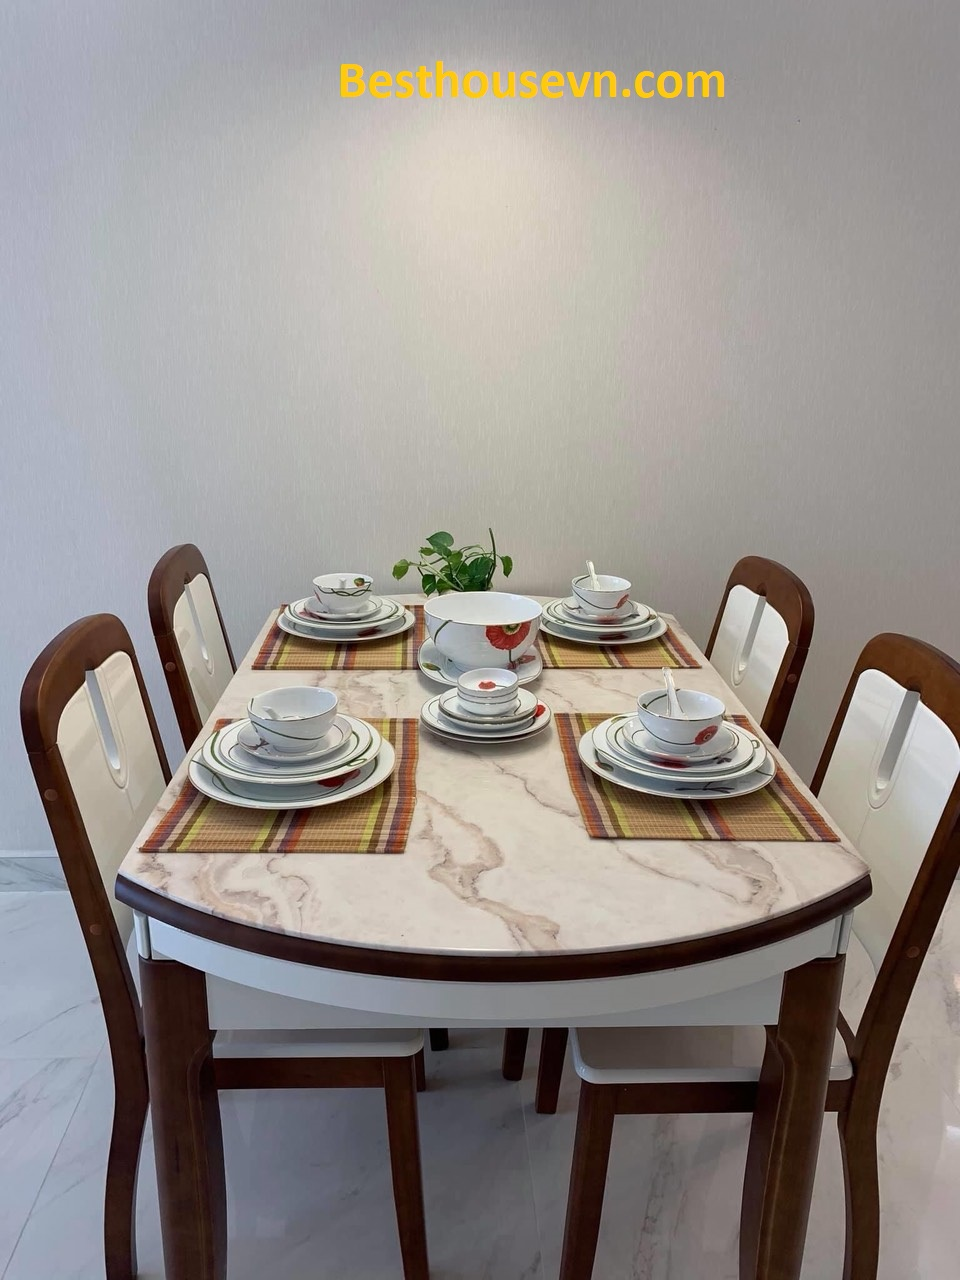 Mitown-89sqm-apartment-for-rent-in-phu-my-hung-district-7-hcmc-6